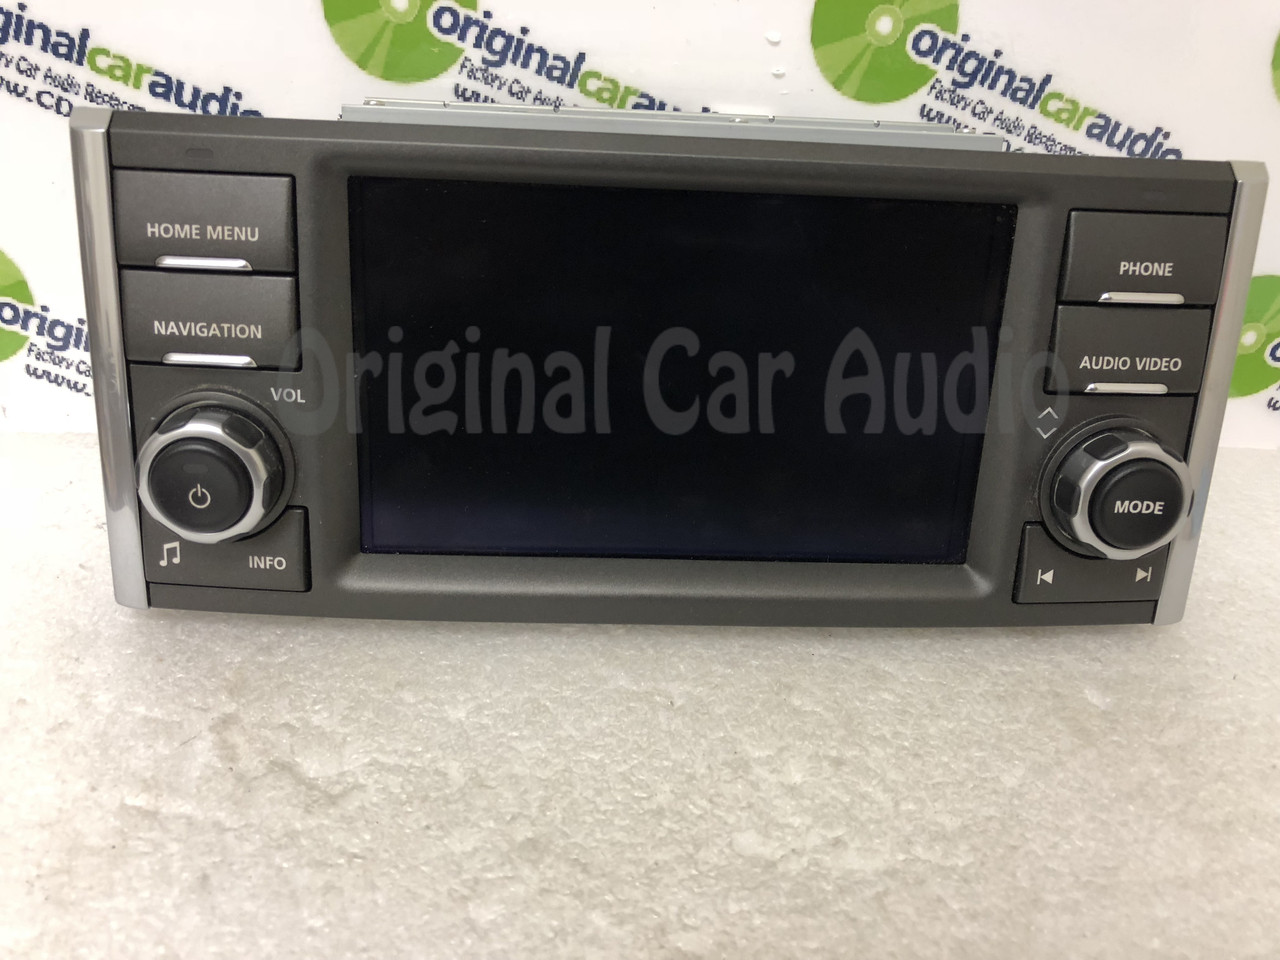 2010 2012 land rover range rover hse oem touch screen navigation radio display screen monitor  [ 1280 x 960 Pixel ]